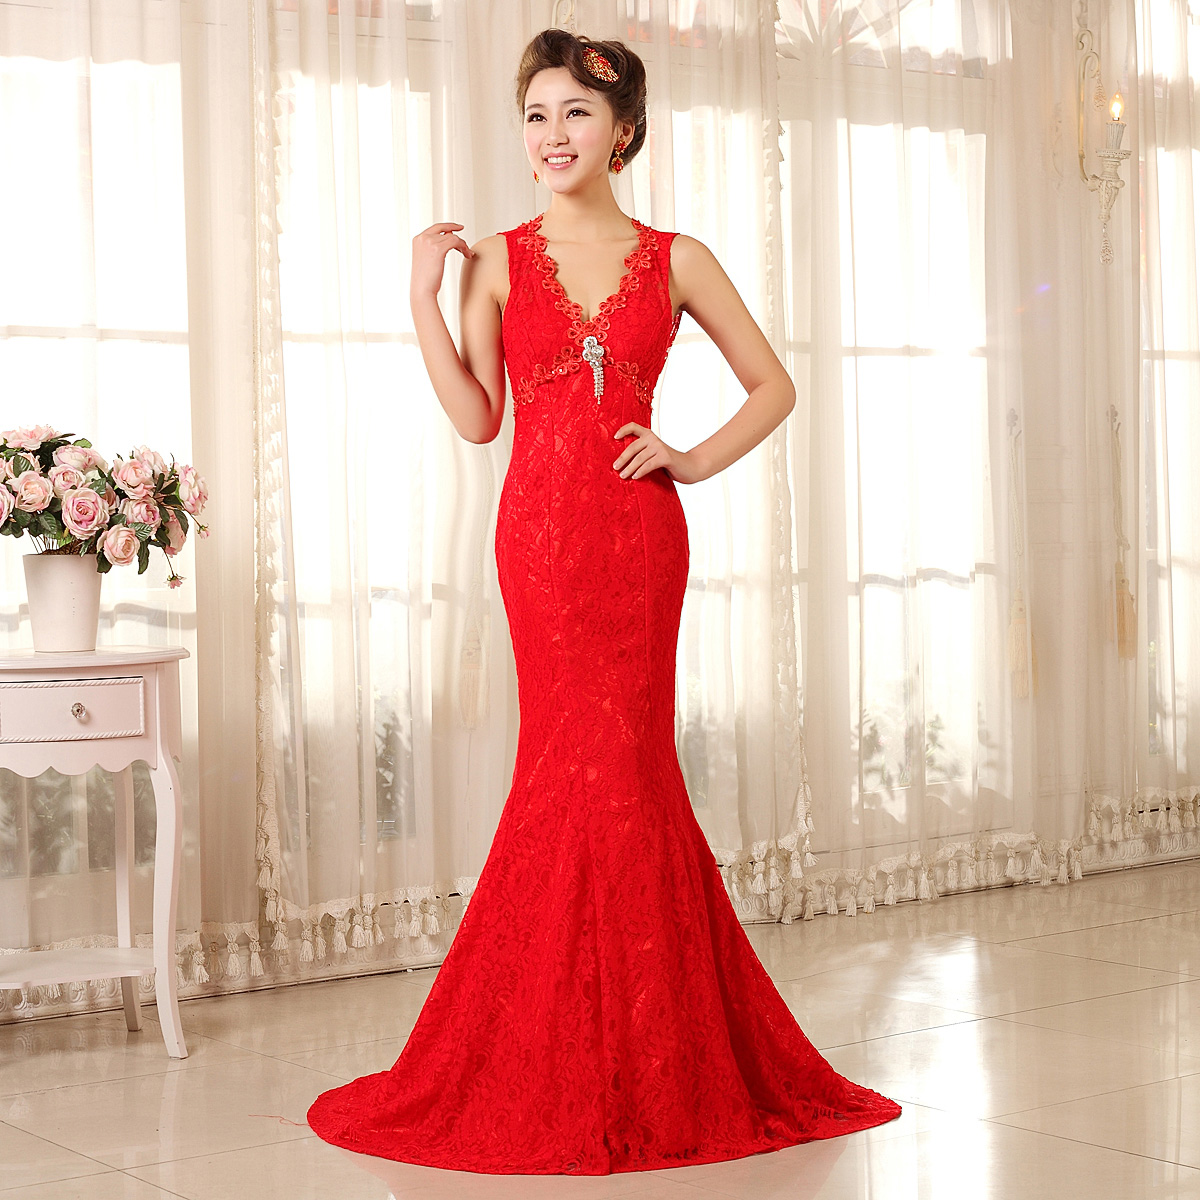 The new 2015 wedding dress the bride toast red long dress sexy halter